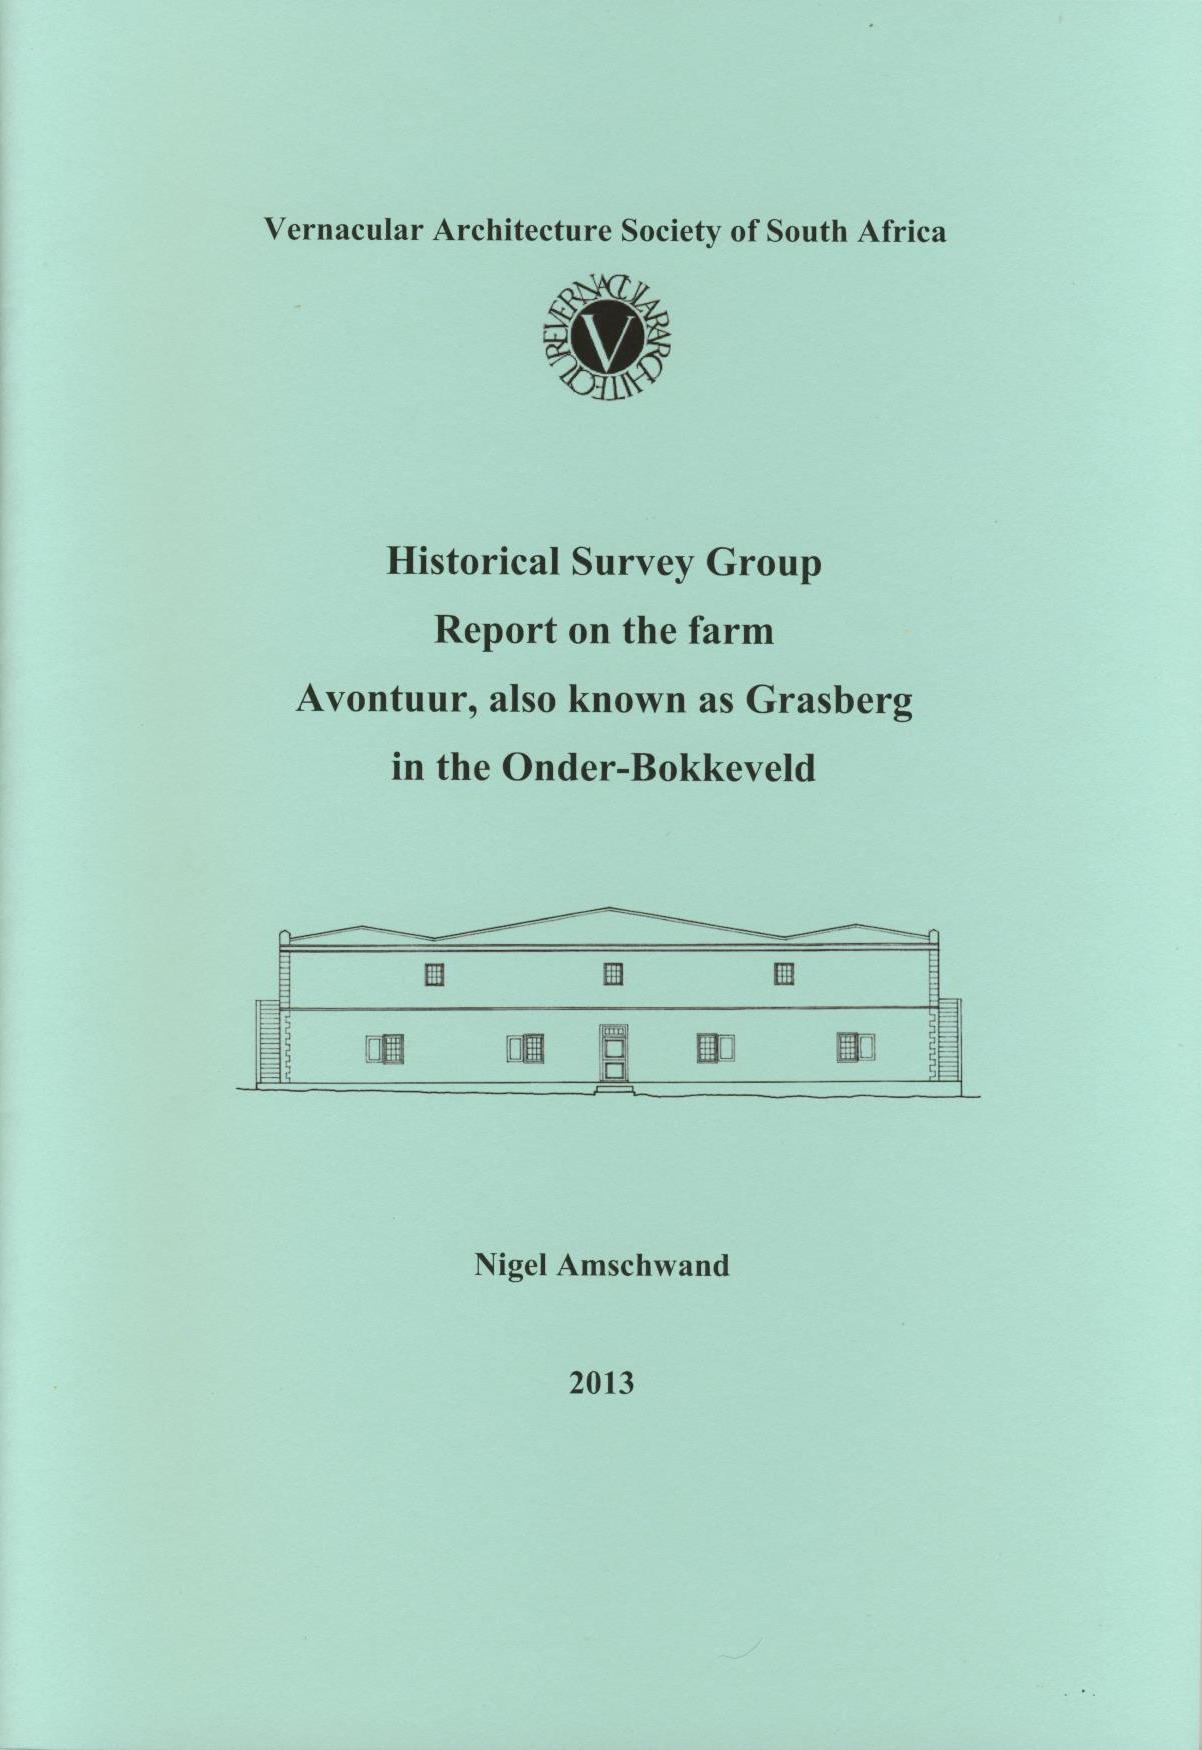 Report on the farm Avontuur, also known as Grasberg, Onder-Bokkeveld: Nigel Amschwand